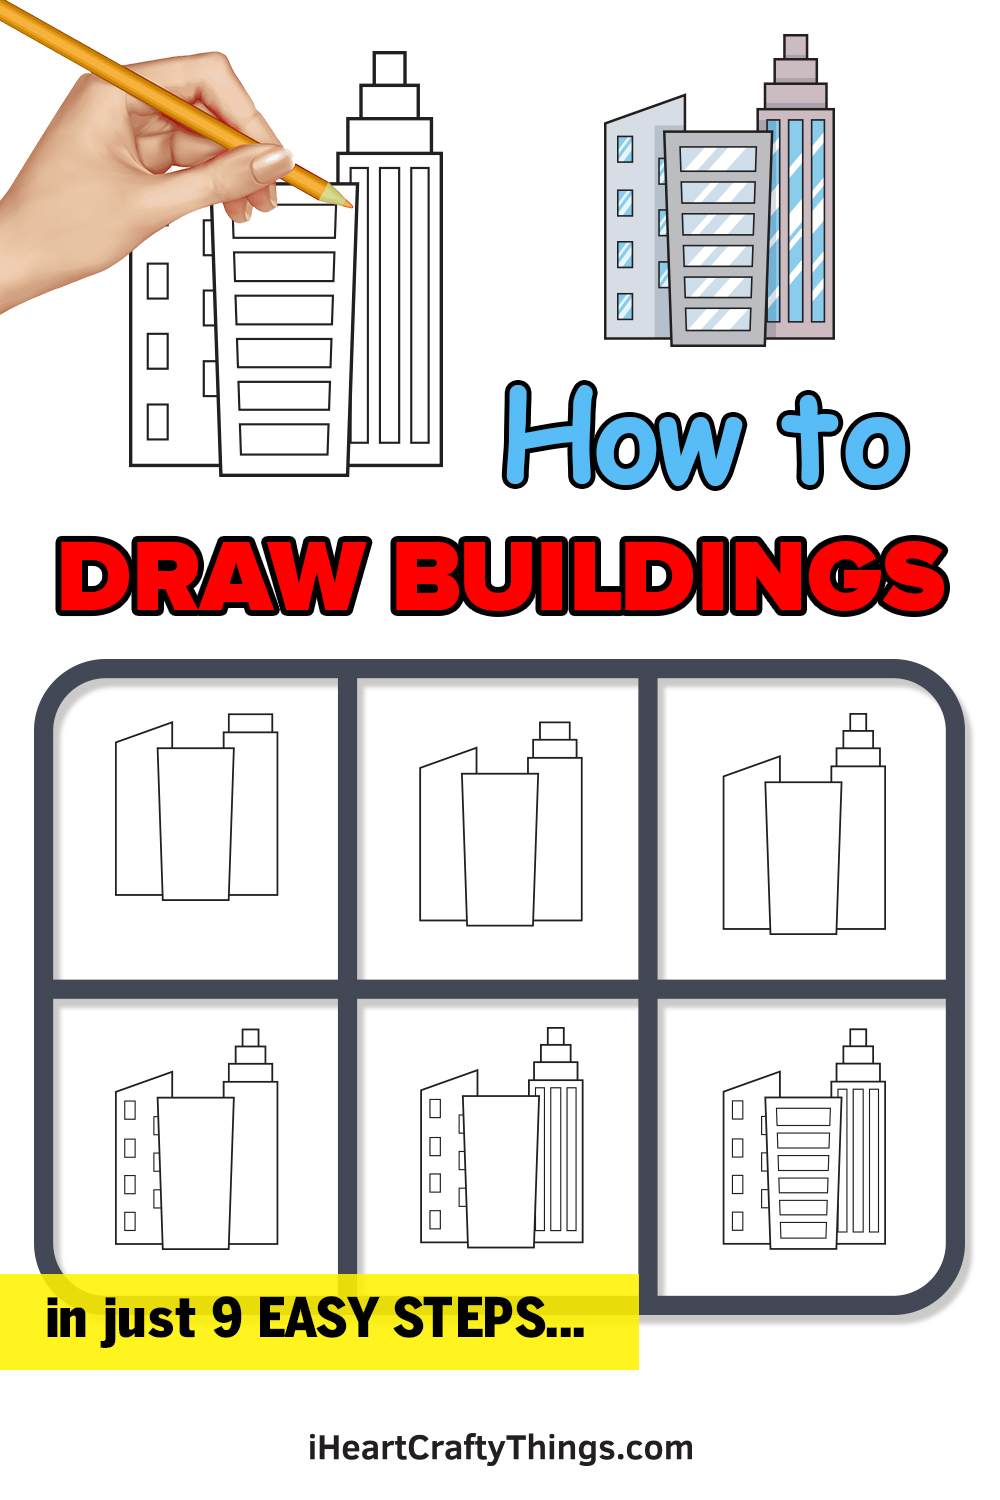 how to draw buildings in 9 easy steps